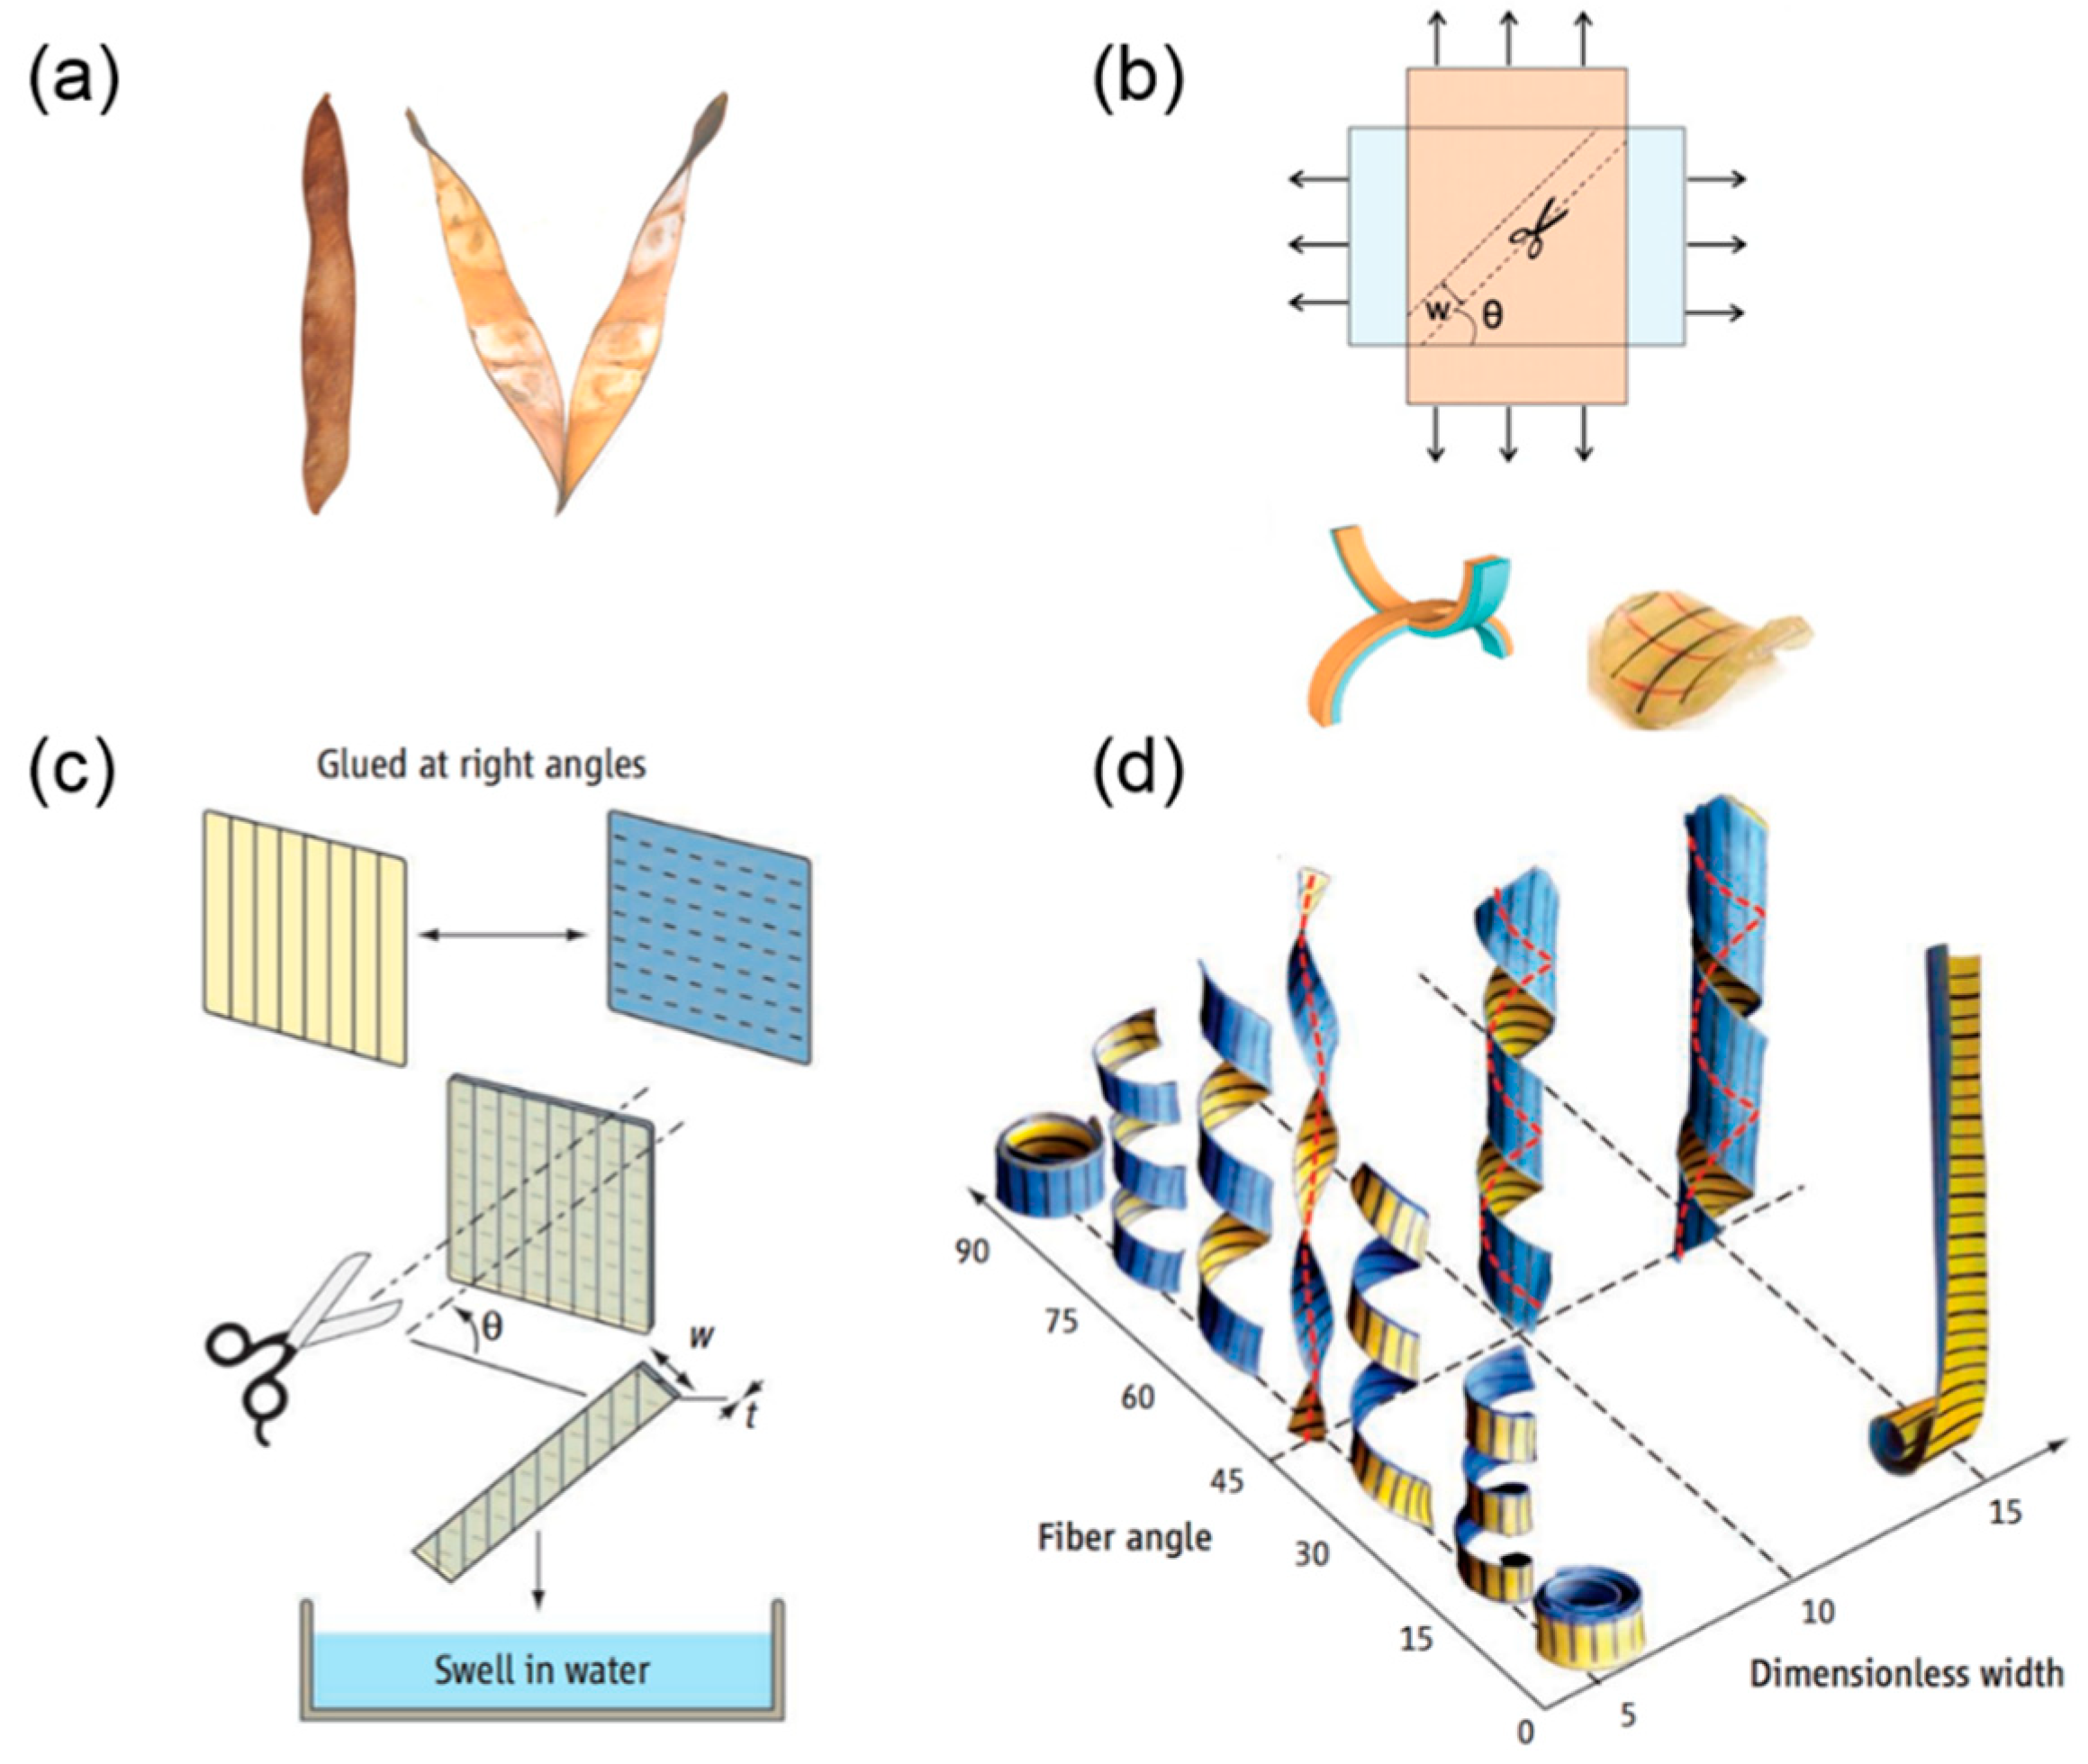 Sensors Free Full Text Helical Structures Mimicking Chiral Seedpod Opening And Tendril Coiling Html